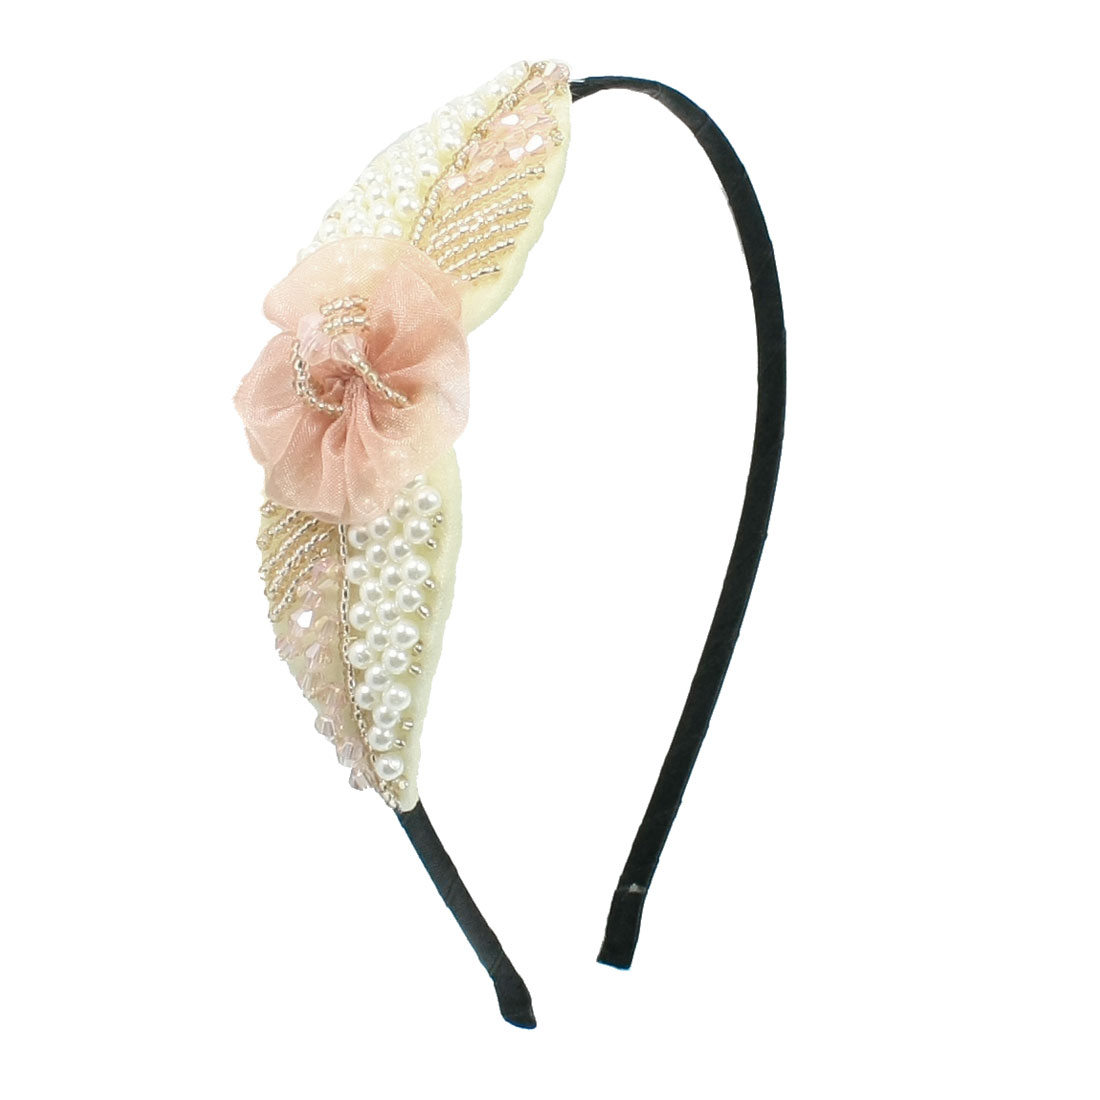 Faux Beads Detail Flower Ornament Metal Headband Hair Hoop Beige Black